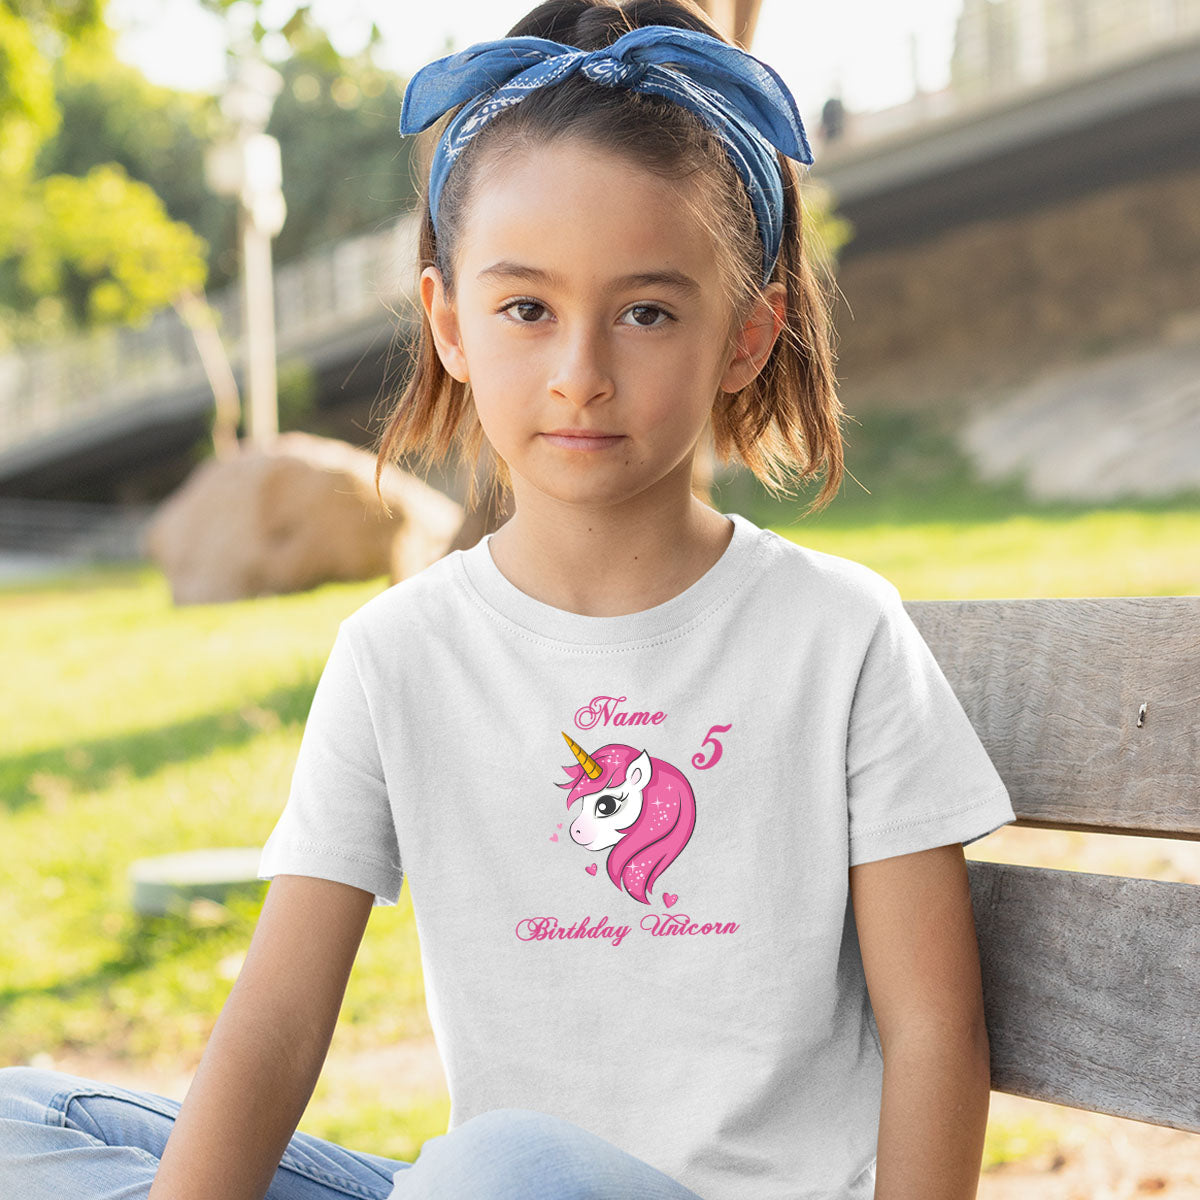 Sprinklecart Beautiful Unicorn Design Printed Birthday Tee Birthday Dress for Your Little Star